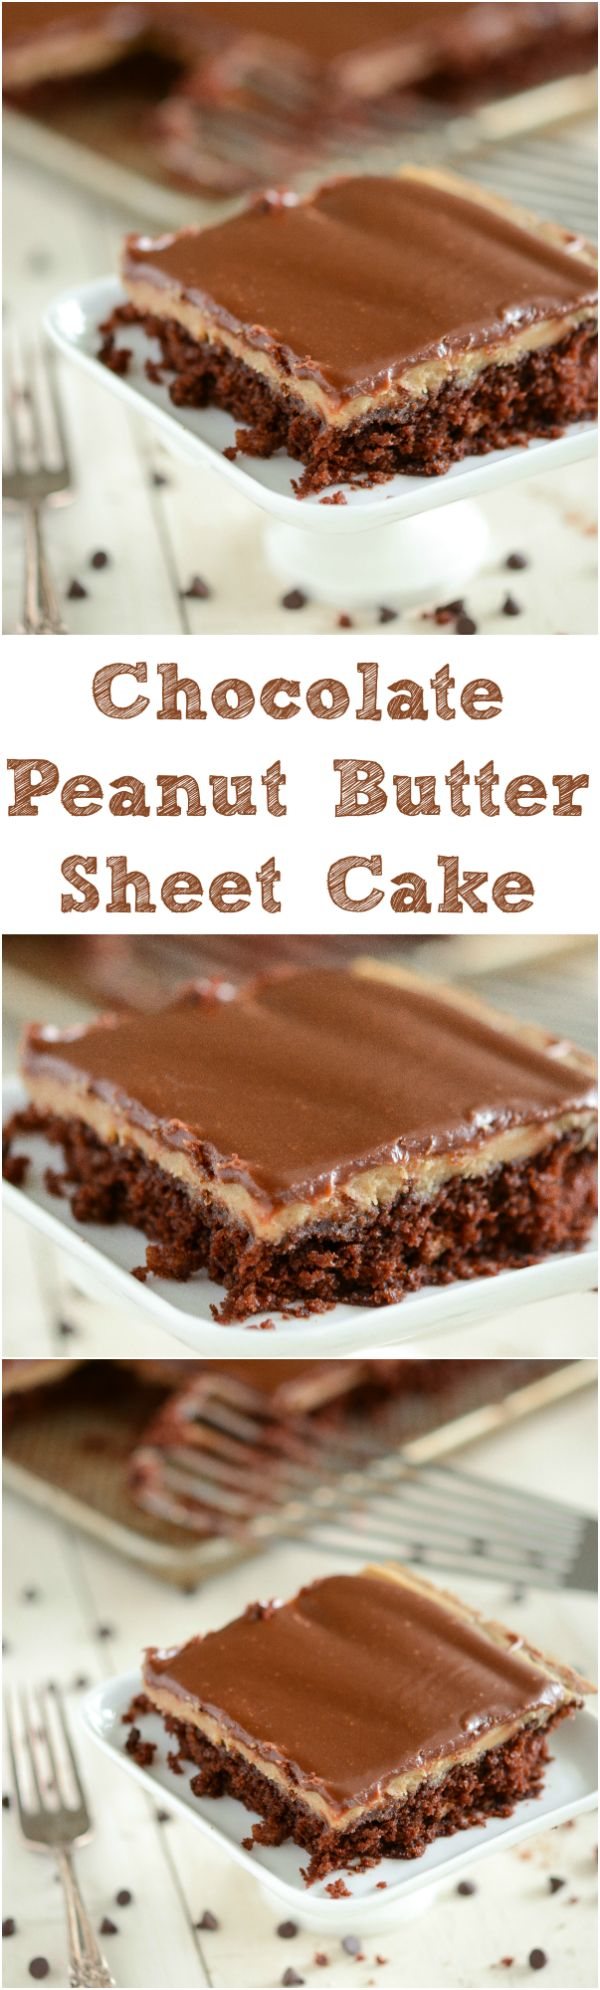 ... peanut butter texas sheet cake chocolate and peanut butter sheet cake